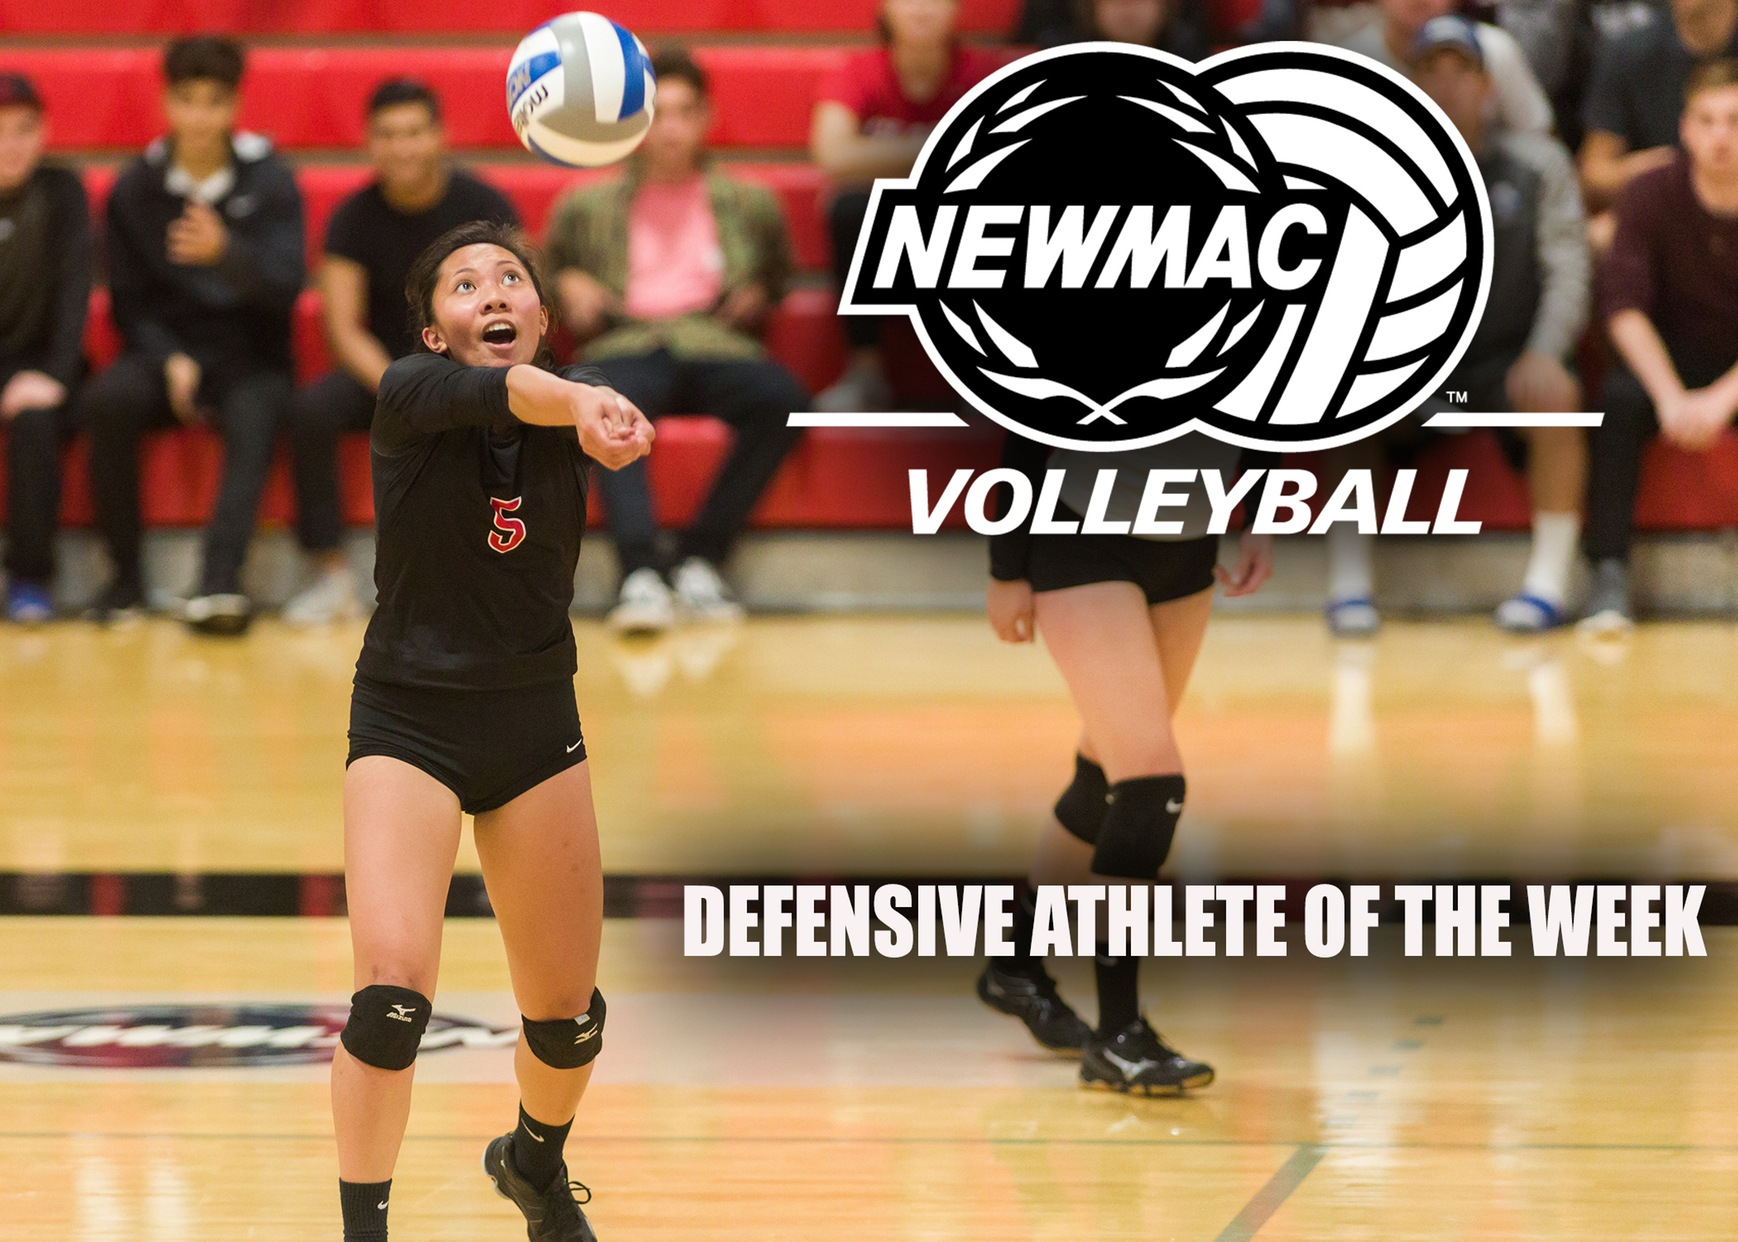 Quiban Picks Up Third NEWMAC Volleyball Defensive Athlete of the Week Honor